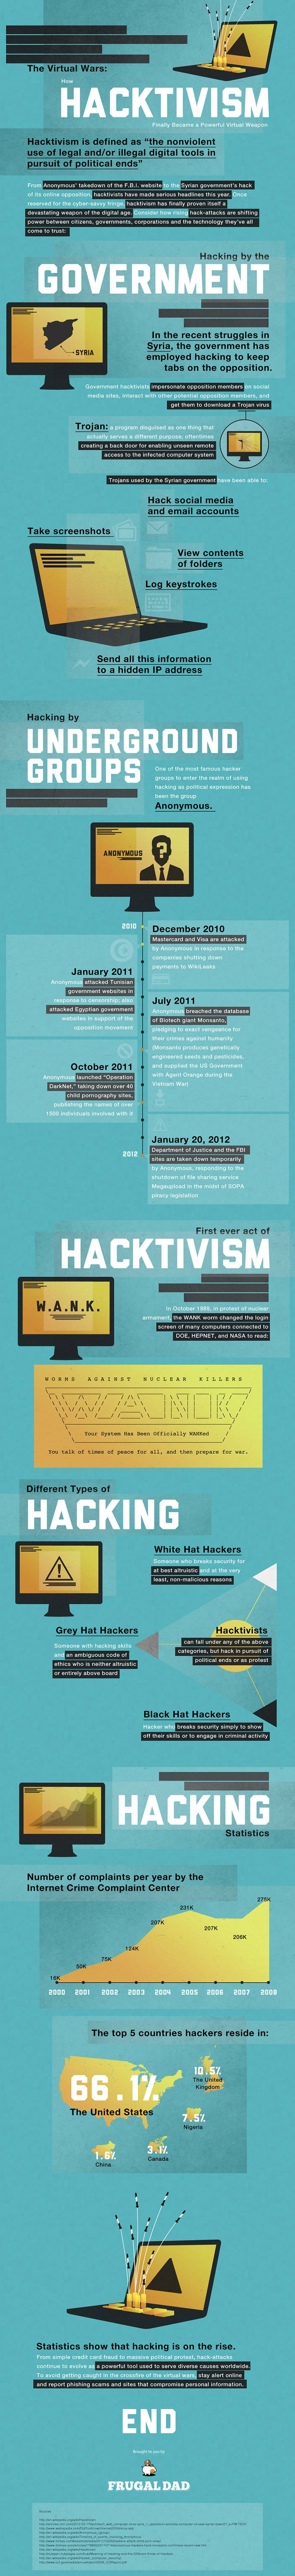 Hacktivism has hit its tipping point. The year 2011 had the most hacktivism-related crimes in history.    Hacktivists use digital tools to breach security systems to protest or take a stand on political issues.